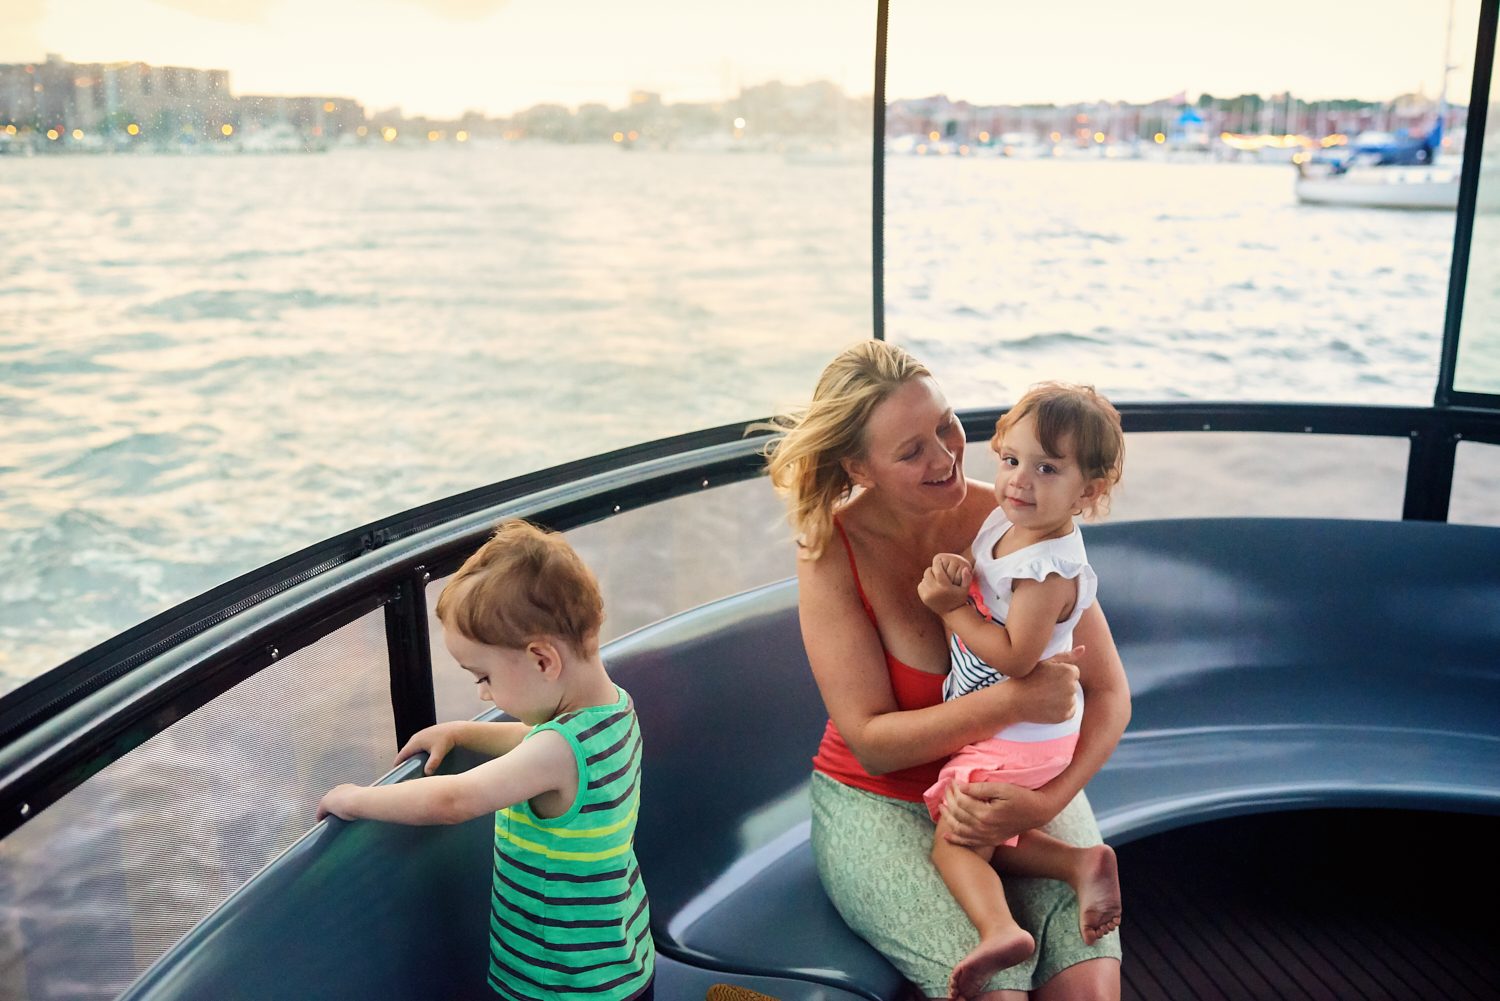 July 2018 Love Boat | Finn Jenn & Maeve onboard the Baltimore Water Taxi